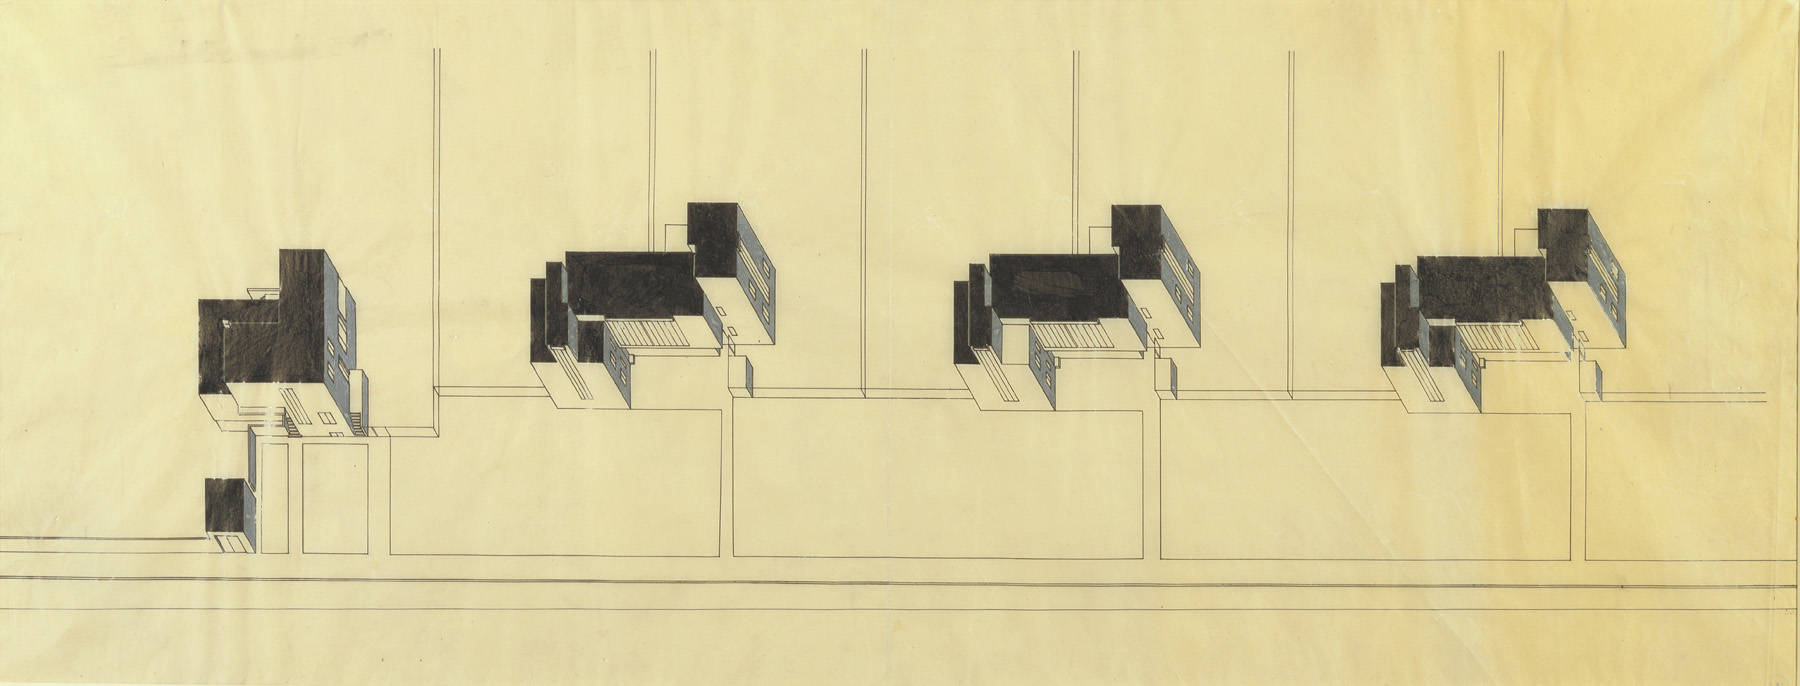 Gropius' isometric design drawing of the Masters' Houses. House ...